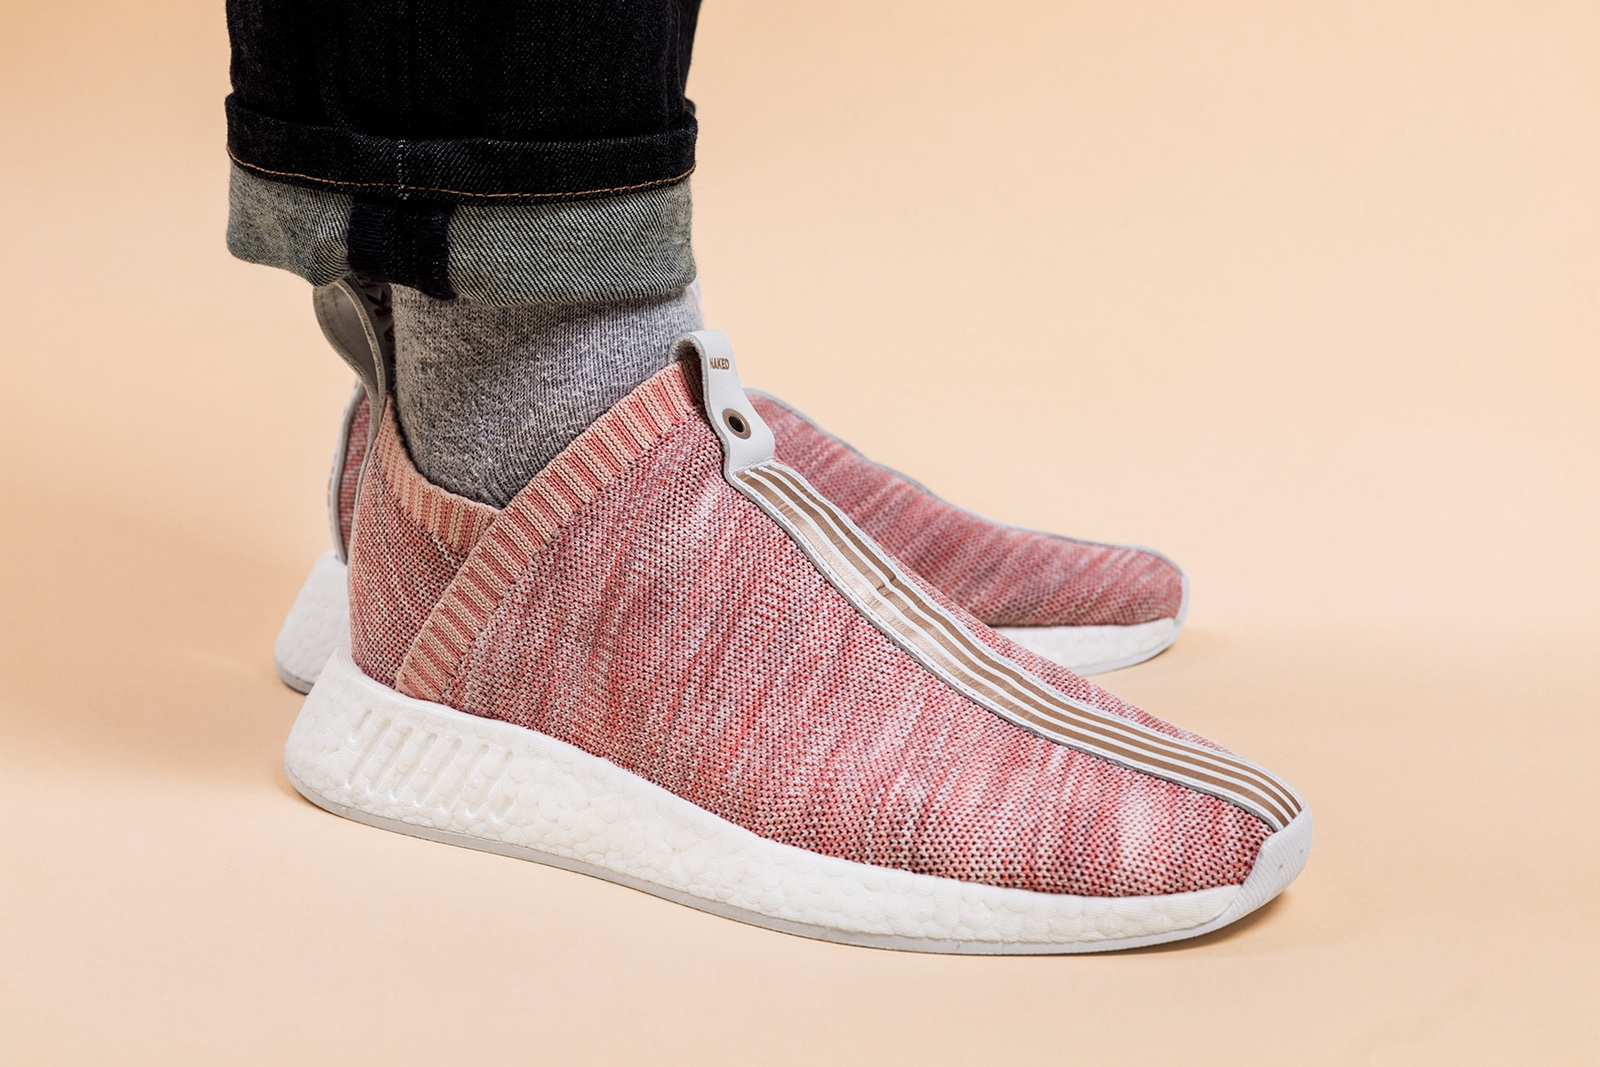 giay the thao adidas 2017 - Kith x Naked x adidas Consortium NMD City Sock - elle man 3